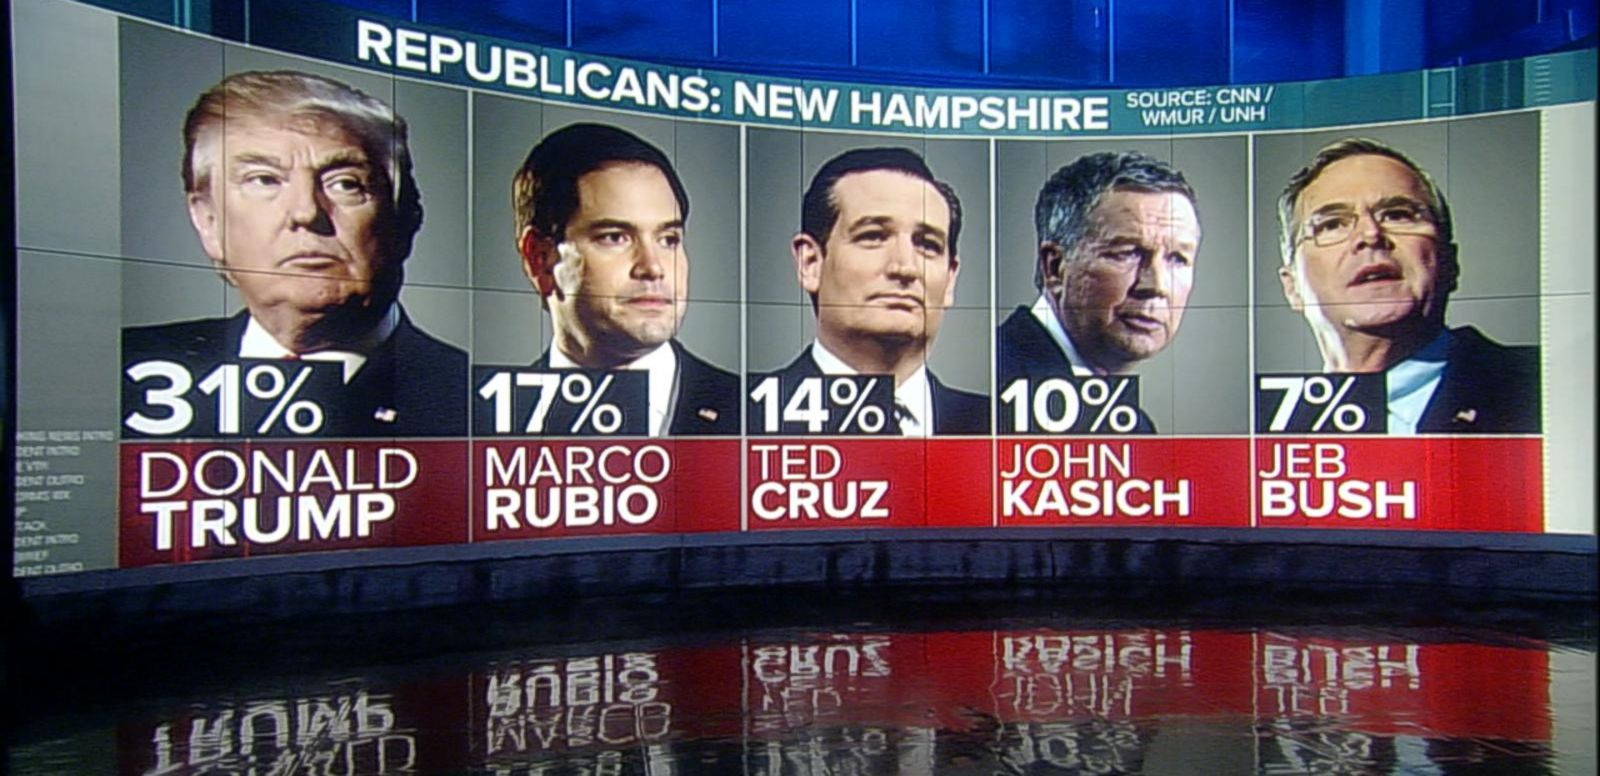 VIDEO: Republican Presidential Candidates Vying for Votes in New Hampshire